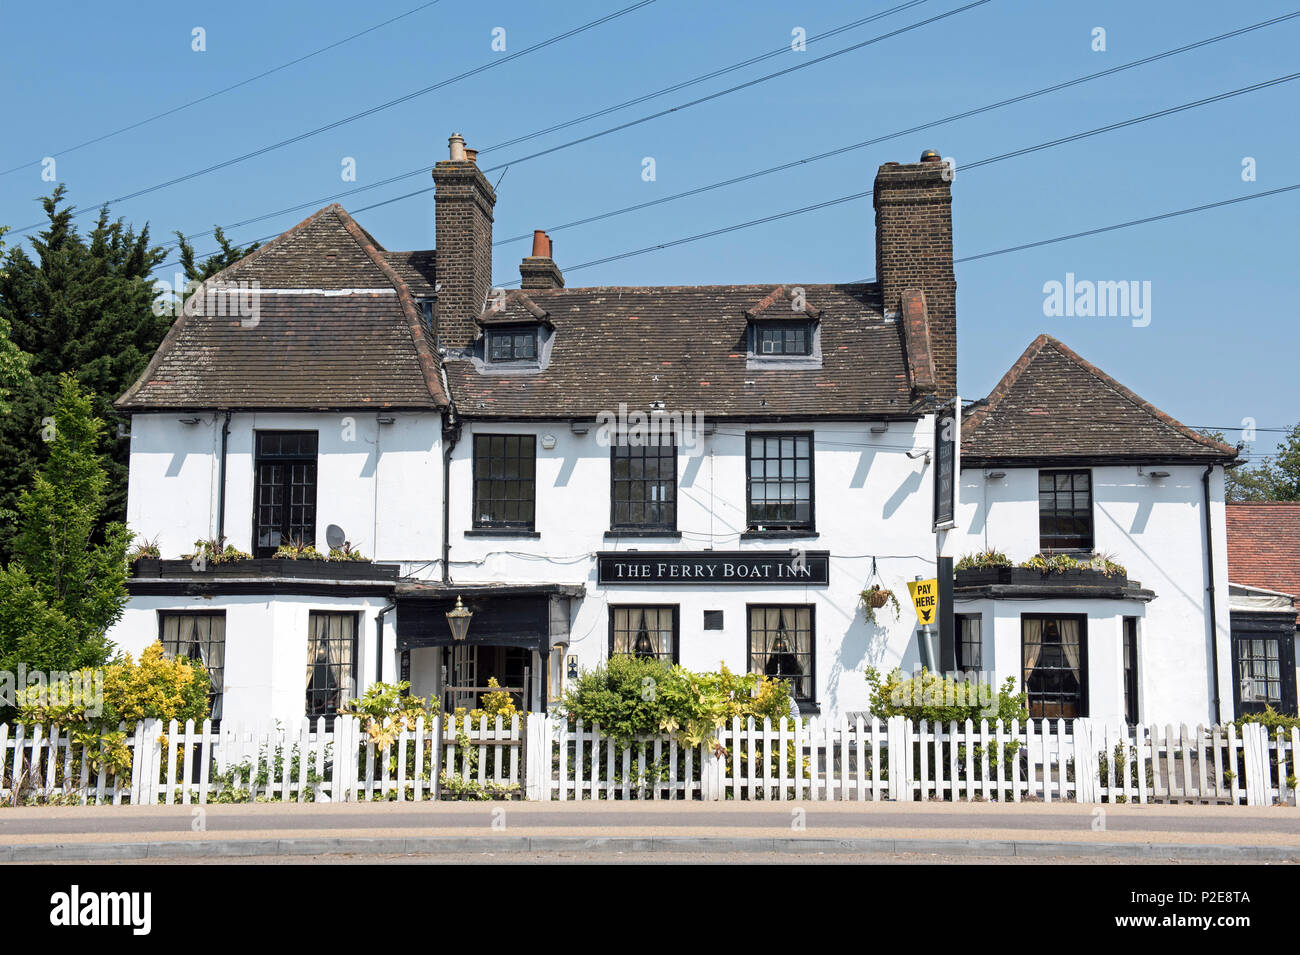 The Ferry Boat Inn, 18th Century public house or pub Tottenham Hale London Borough of Waltham Forest England Britain UK - Stock Image